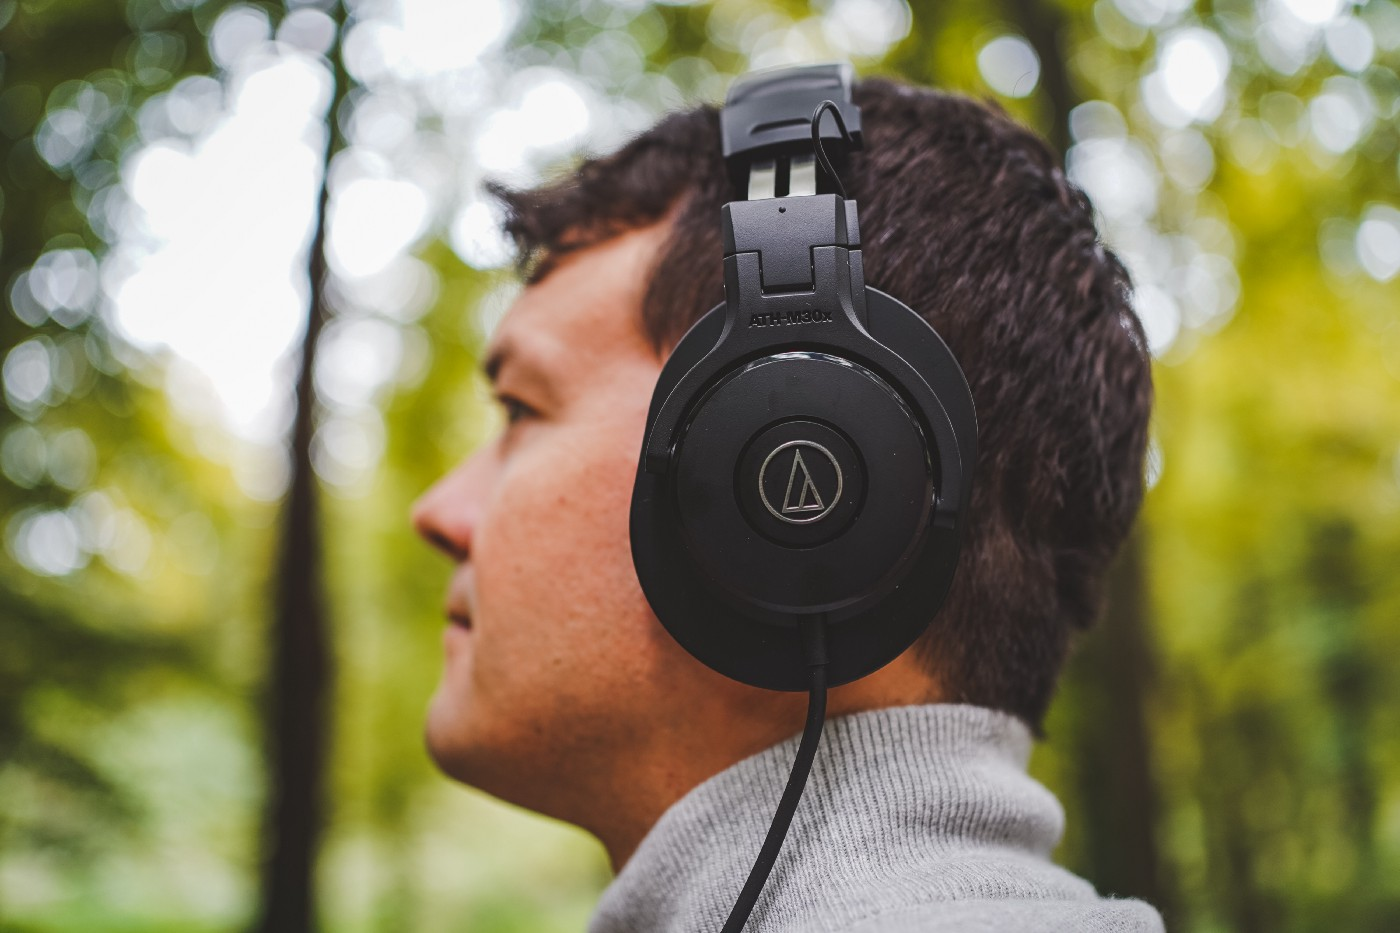 Man wearing headphones, in the woods